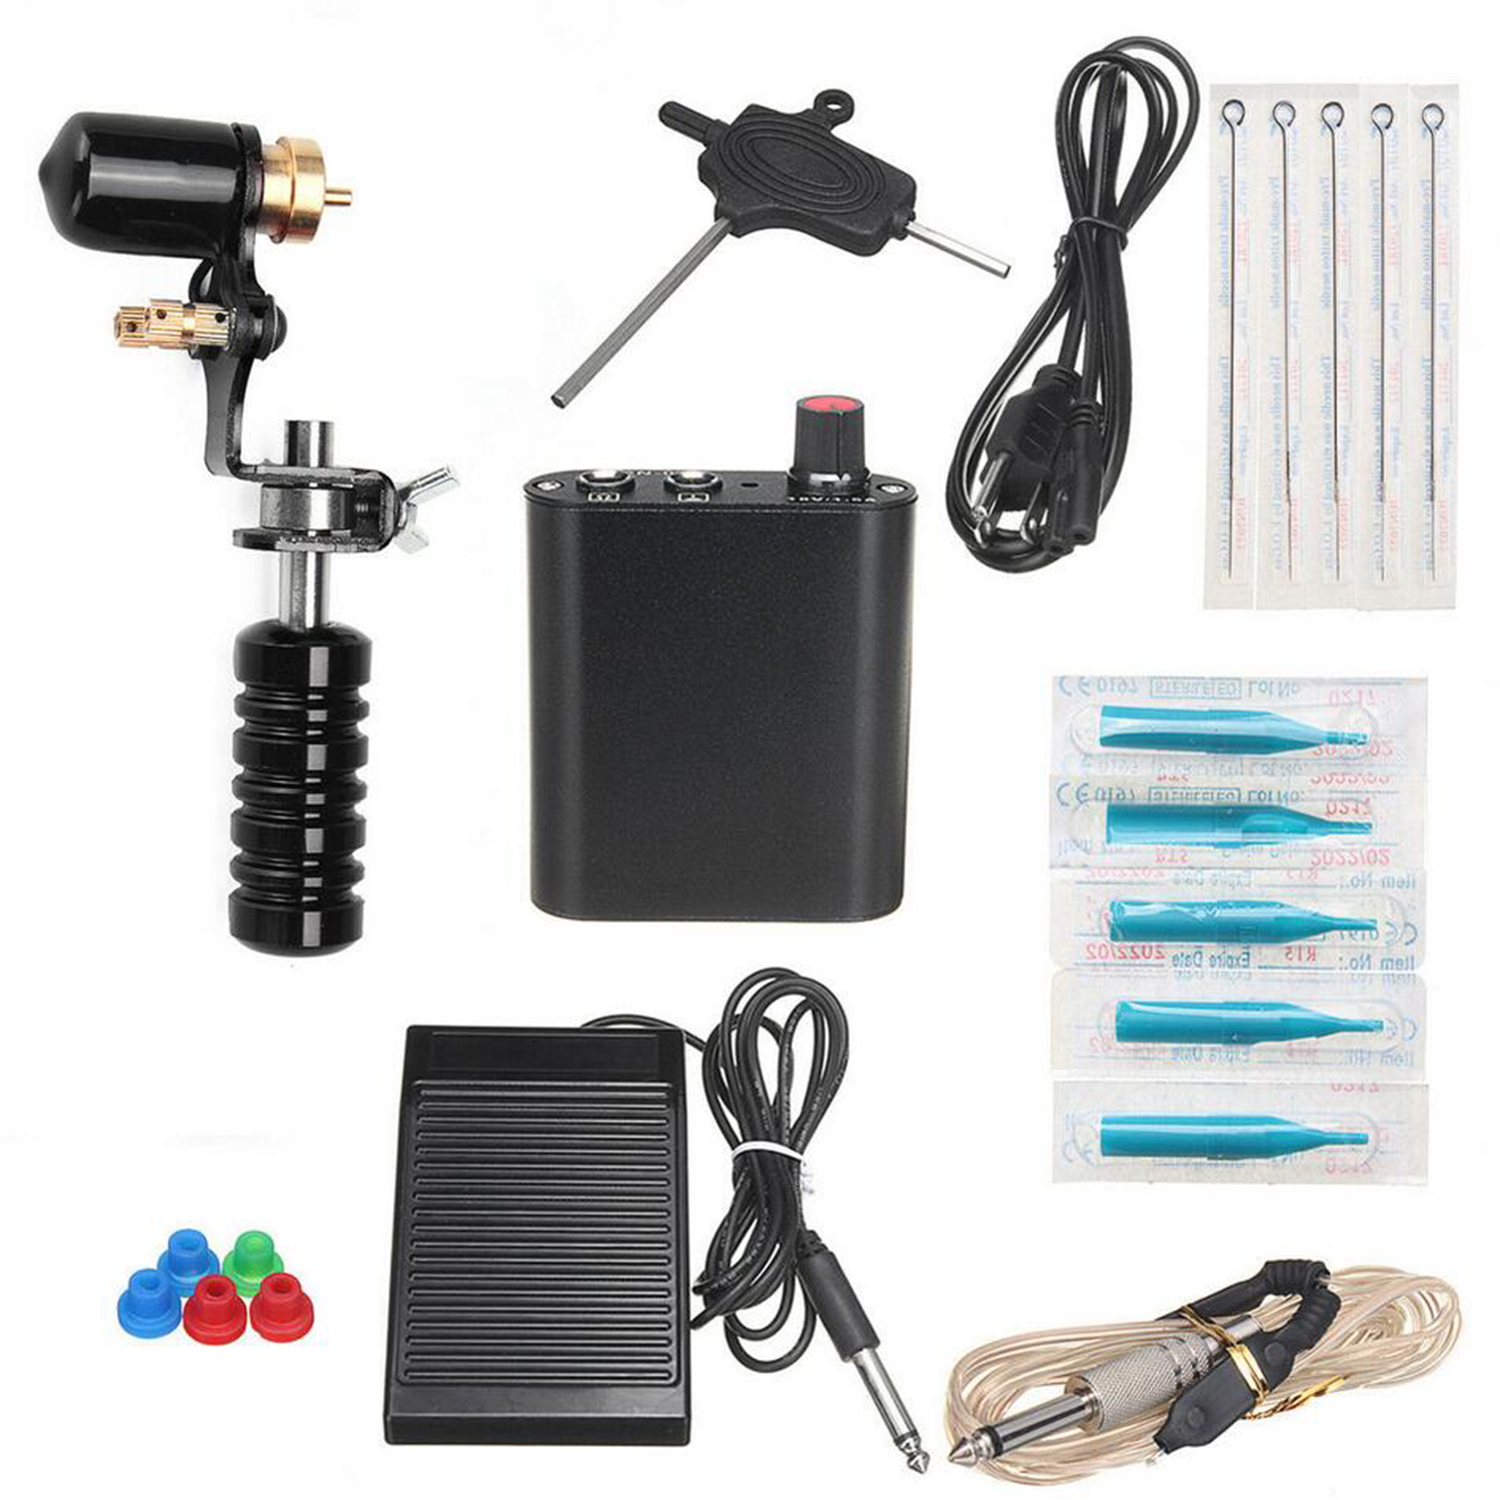 Tattoo Machine Set With Tatto-Power-Supply And Sterile Tattoo-Needles Beginner's Tool Kit 110V High-grade Motor Tattoo Kit